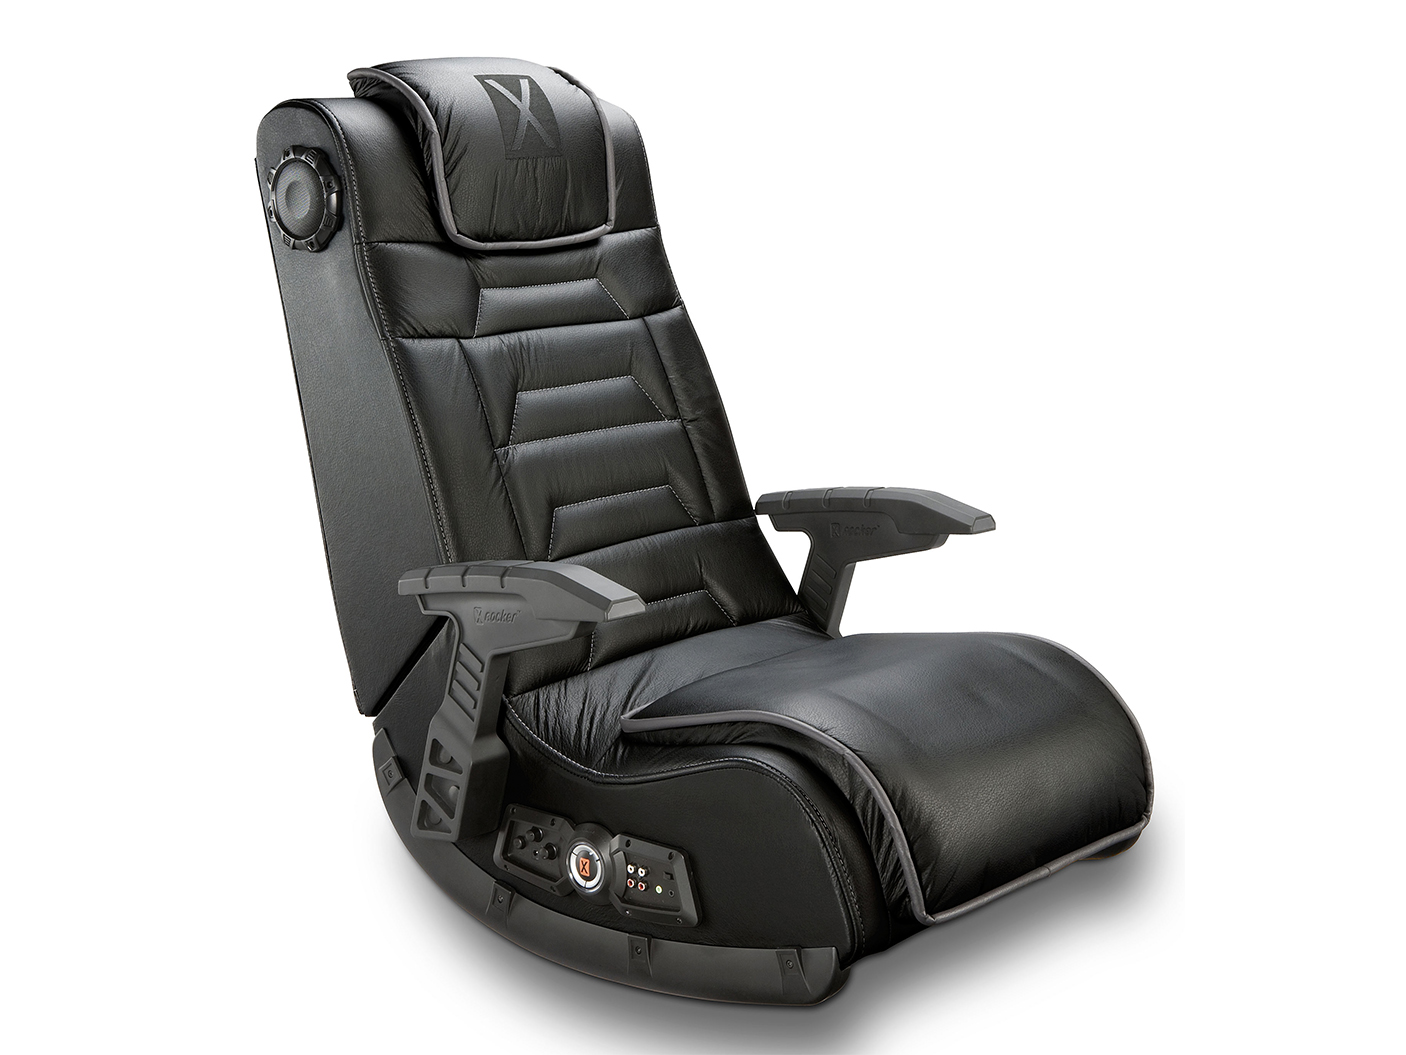 x rocker pro series h3 gaming chair review best buy blog. Black Bedroom Furniture Sets. Home Design Ideas